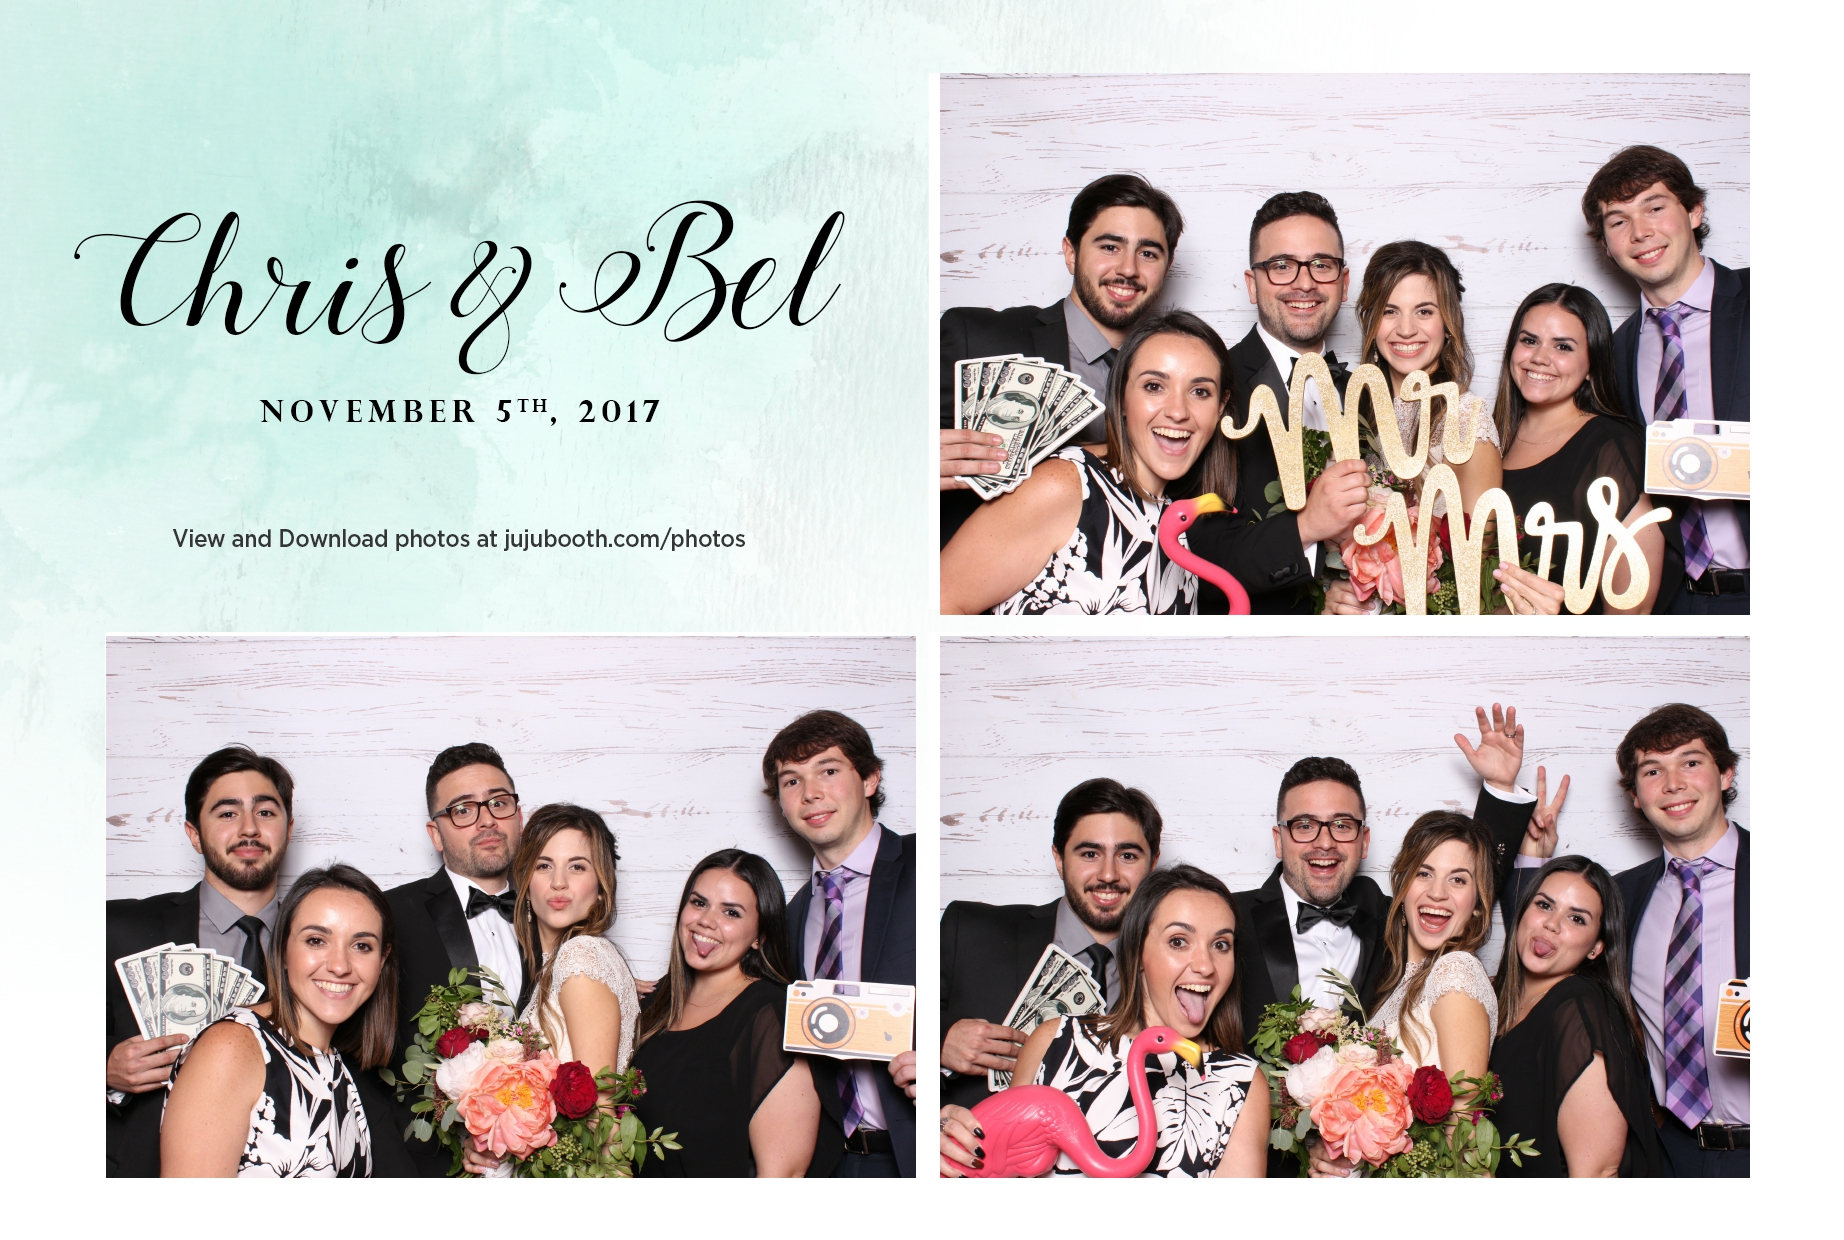 Miami Beach Woman's Club Photo Booth template for a wedding